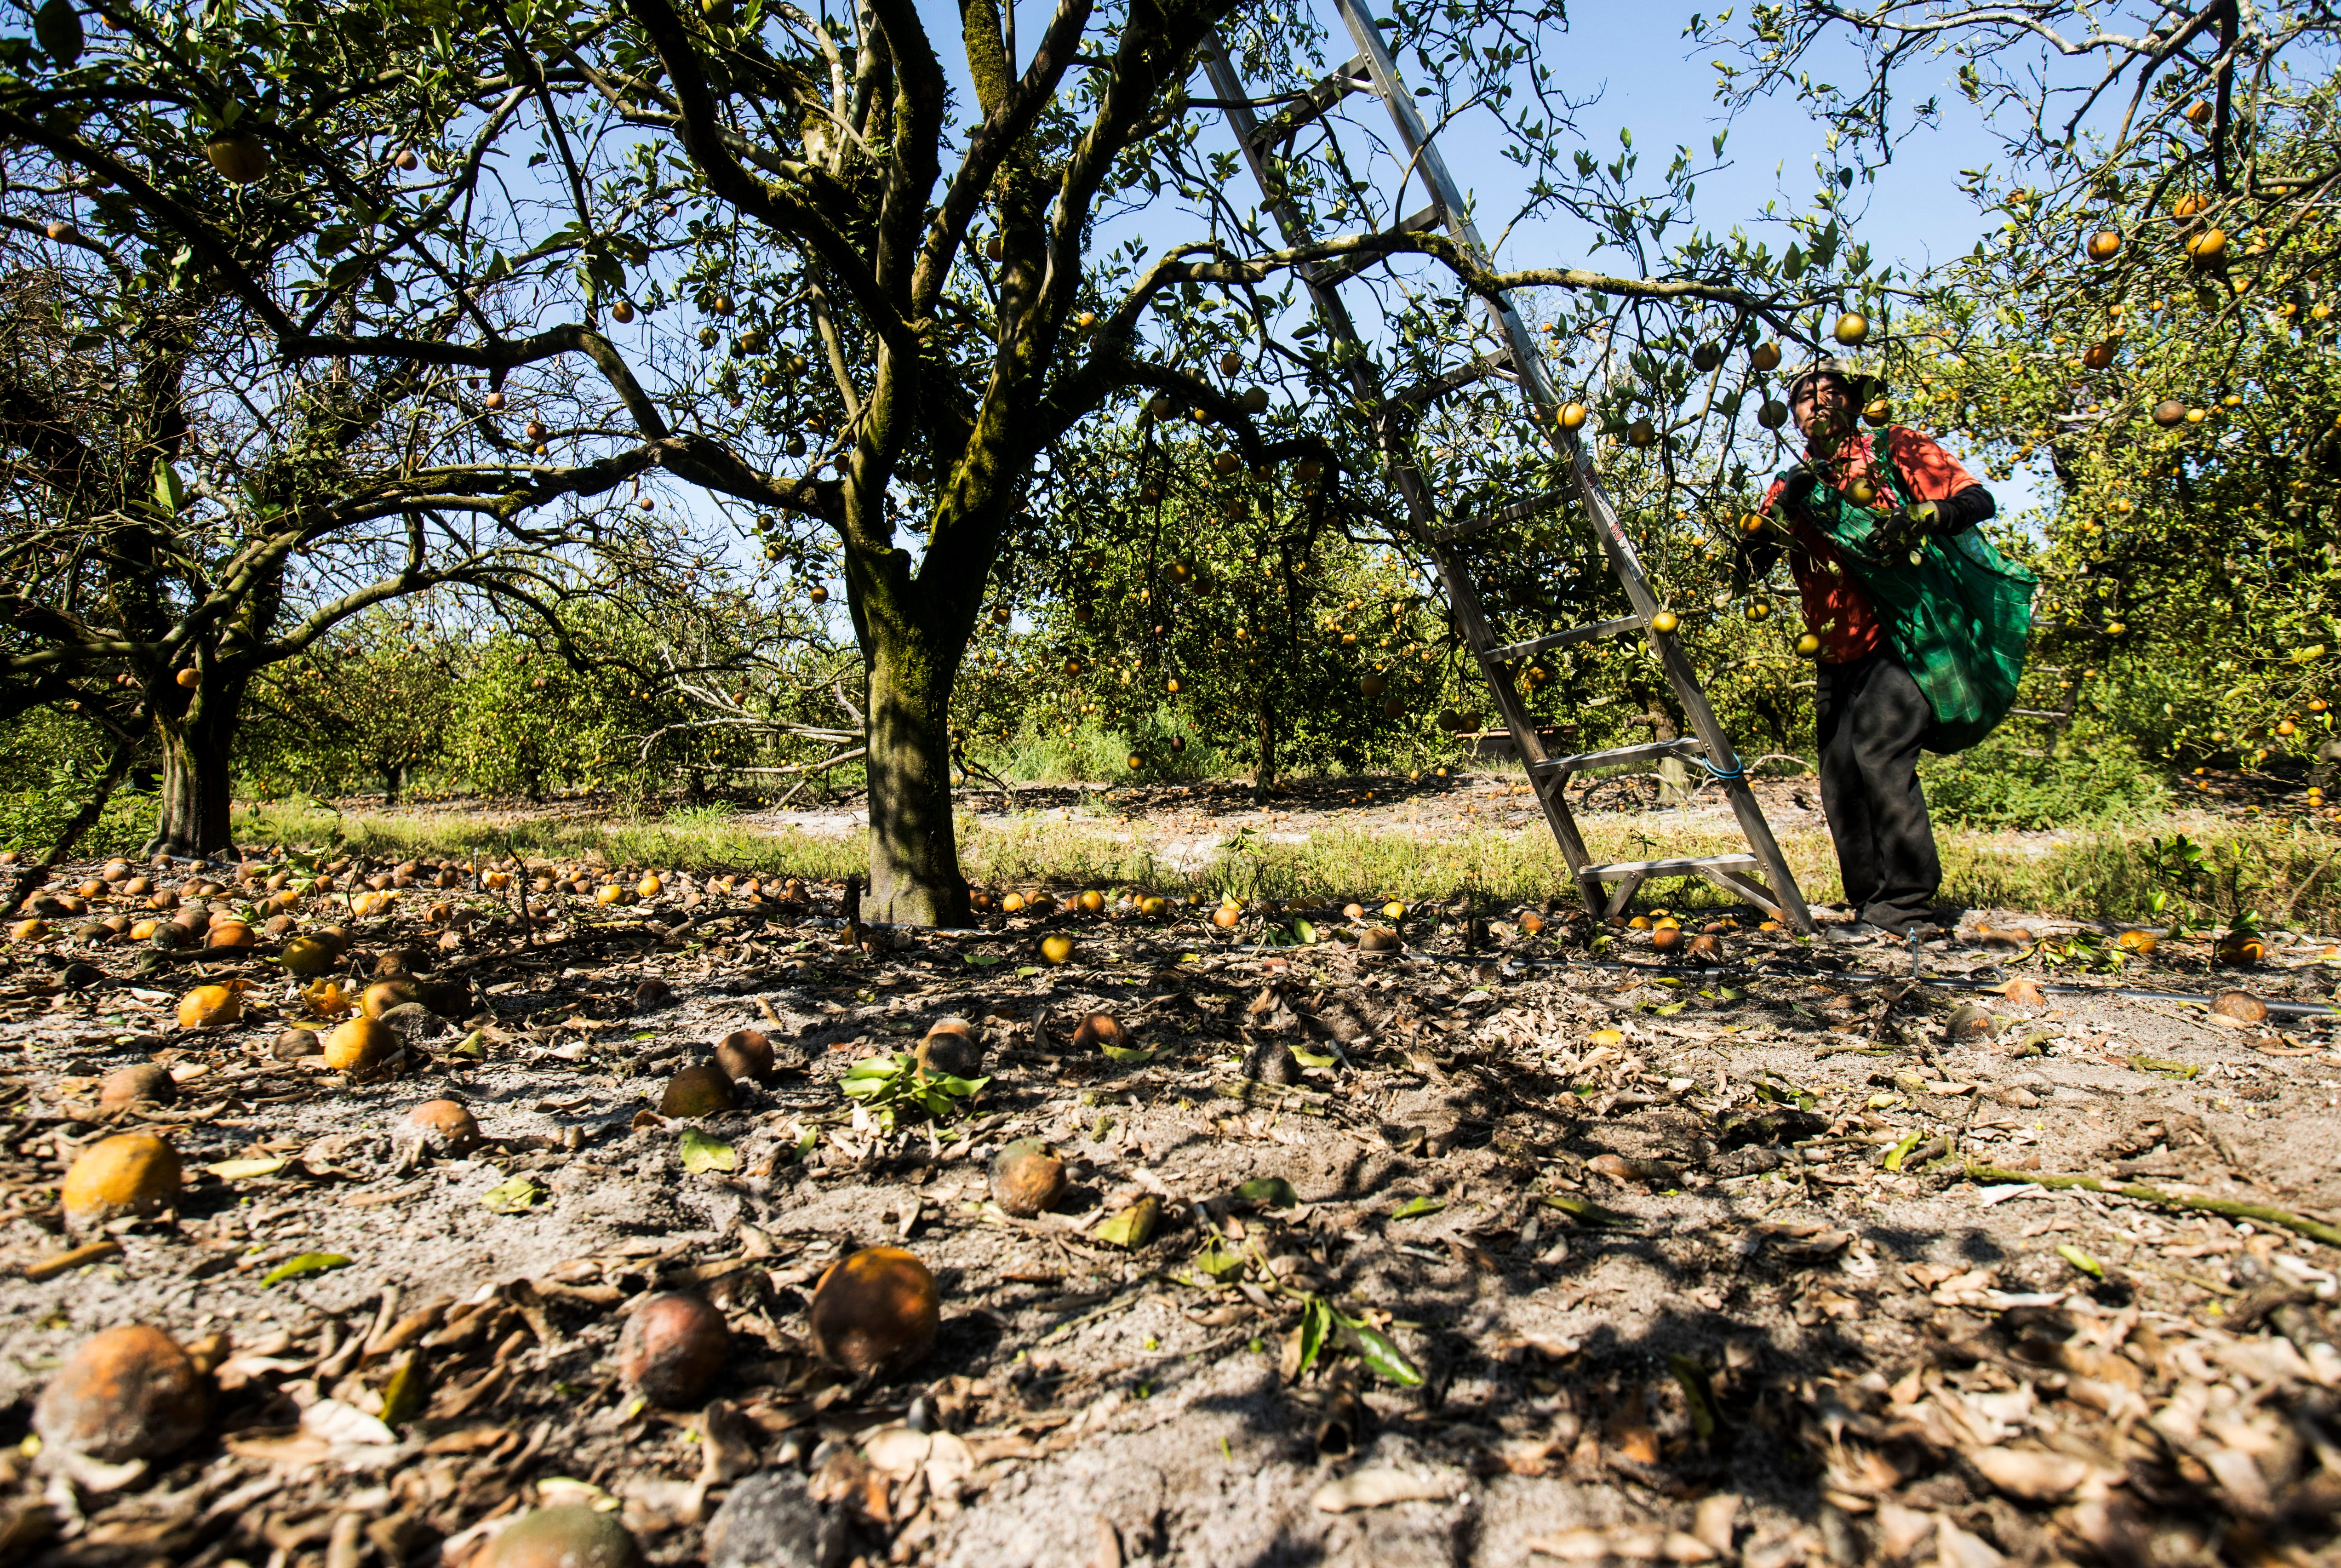 Francisco Hernandez, one of many orange pickers on temporary agricultural worker visas, harvests oranges at George Winslow's grove in Hendry County, Florida, on Monday, April 27, 2020. The workers are paid more for picking more, so they suffer income loss when fruit drops too.